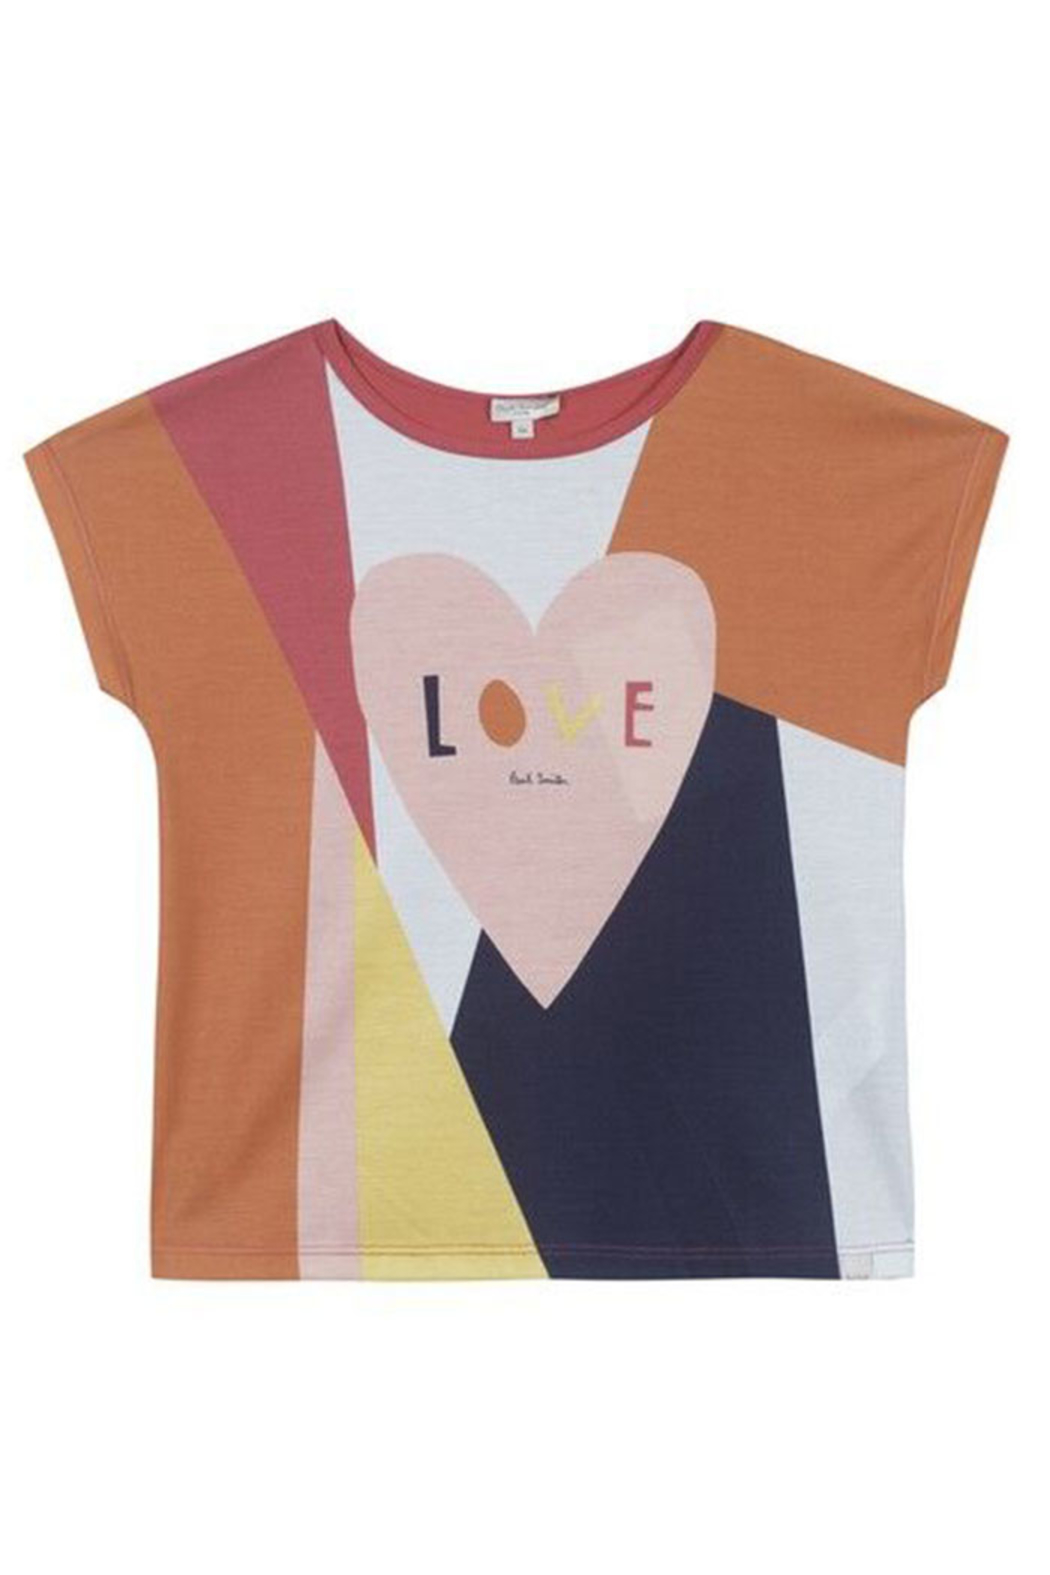 Paul Smith 8-14 Years Love Shirt - Front Cropped Image